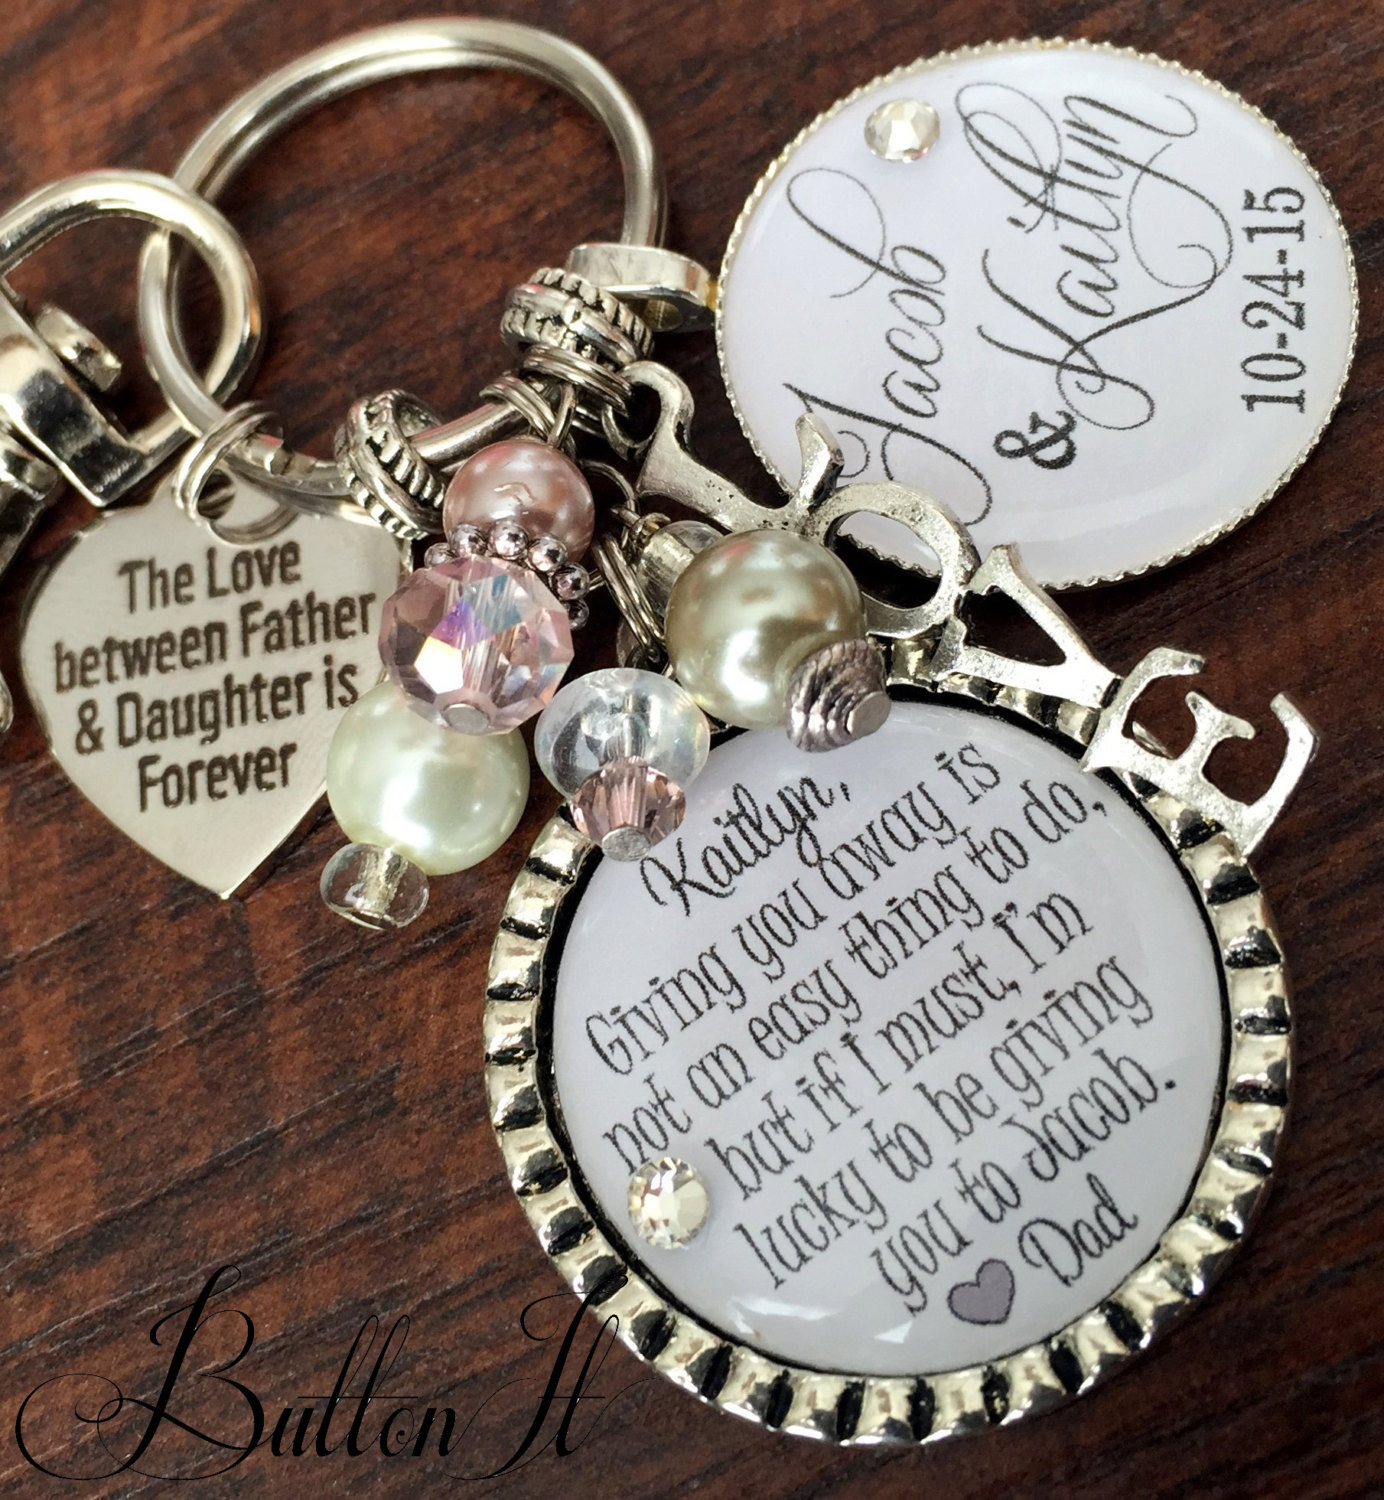 Best ideas about Wedding Gift Ideas For Daughter . Save or Pin Wedding t for Bride from dad daughter wedding t bridal Now.